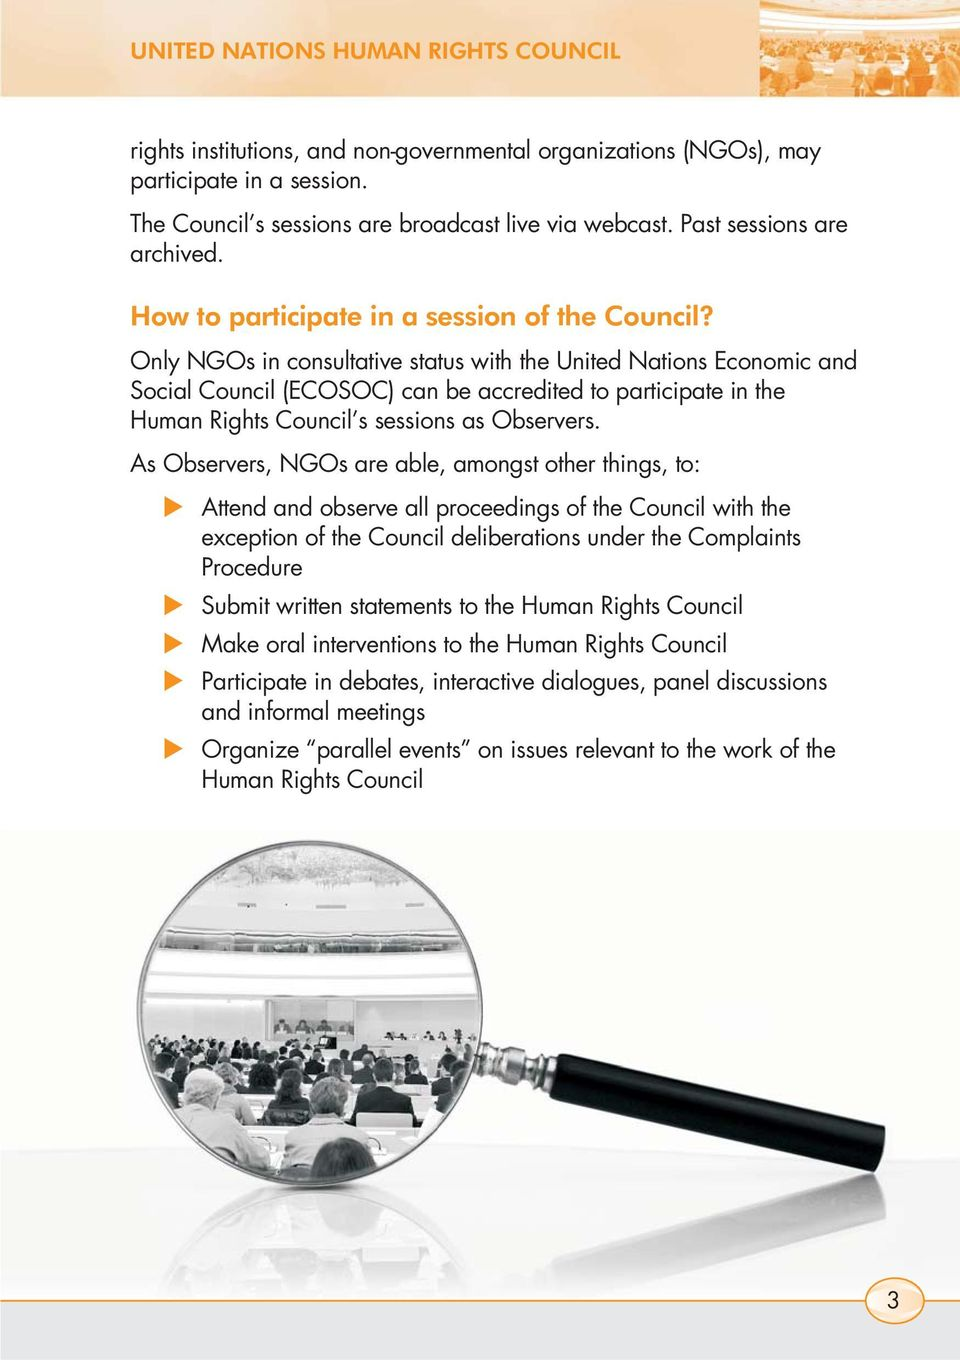 Only NGOs in consultative status with the United Nations Economic and Social Council (ECOSOC) can be accredited to participate in the Human Rights Council s sessions as Observers.